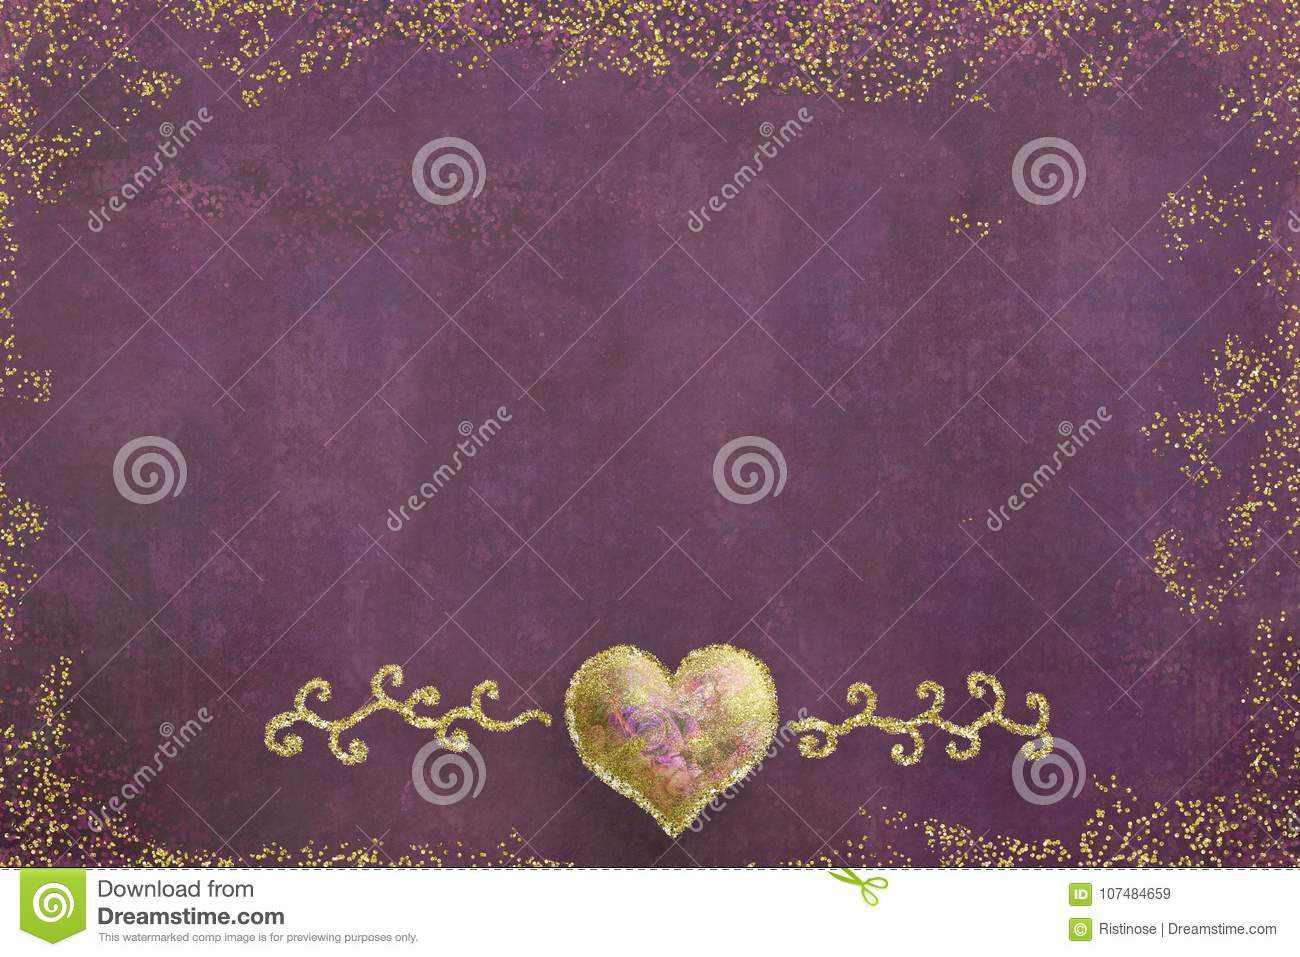 Lovers greeting cards stock image image of gold background 107484659 download lovers greeting cards stock image image of gold background 107484659 m4hsunfo